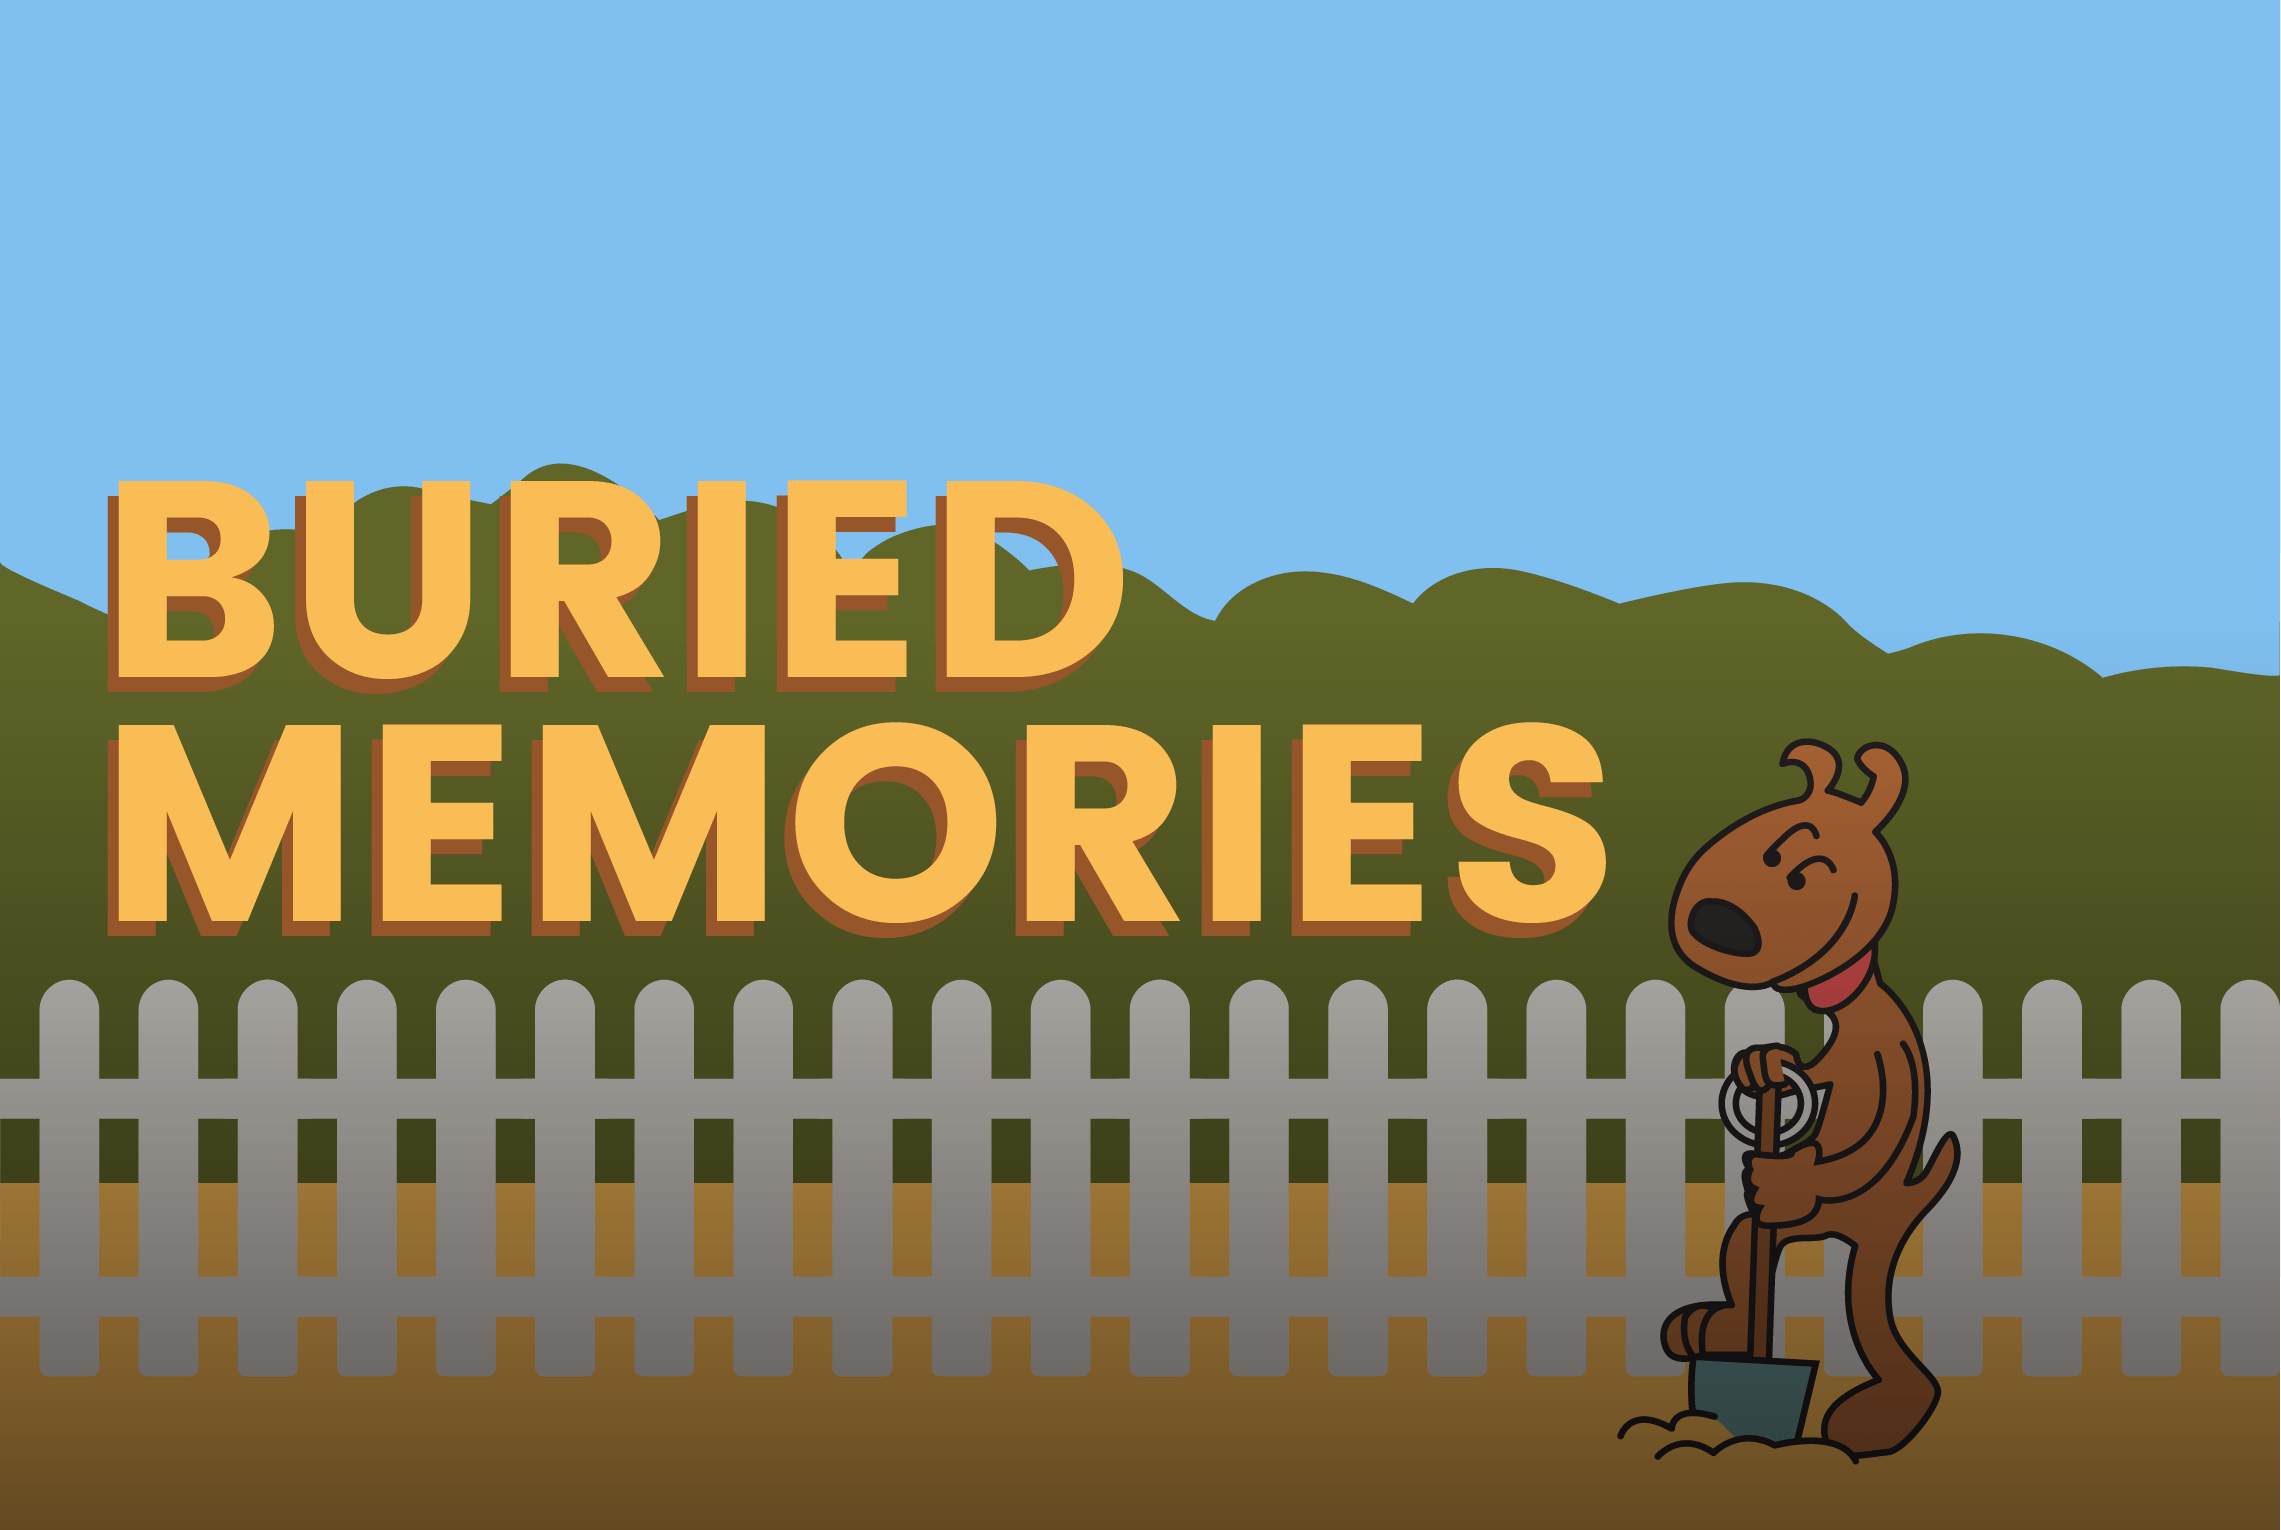 Buried Memories A Game On Funbrain